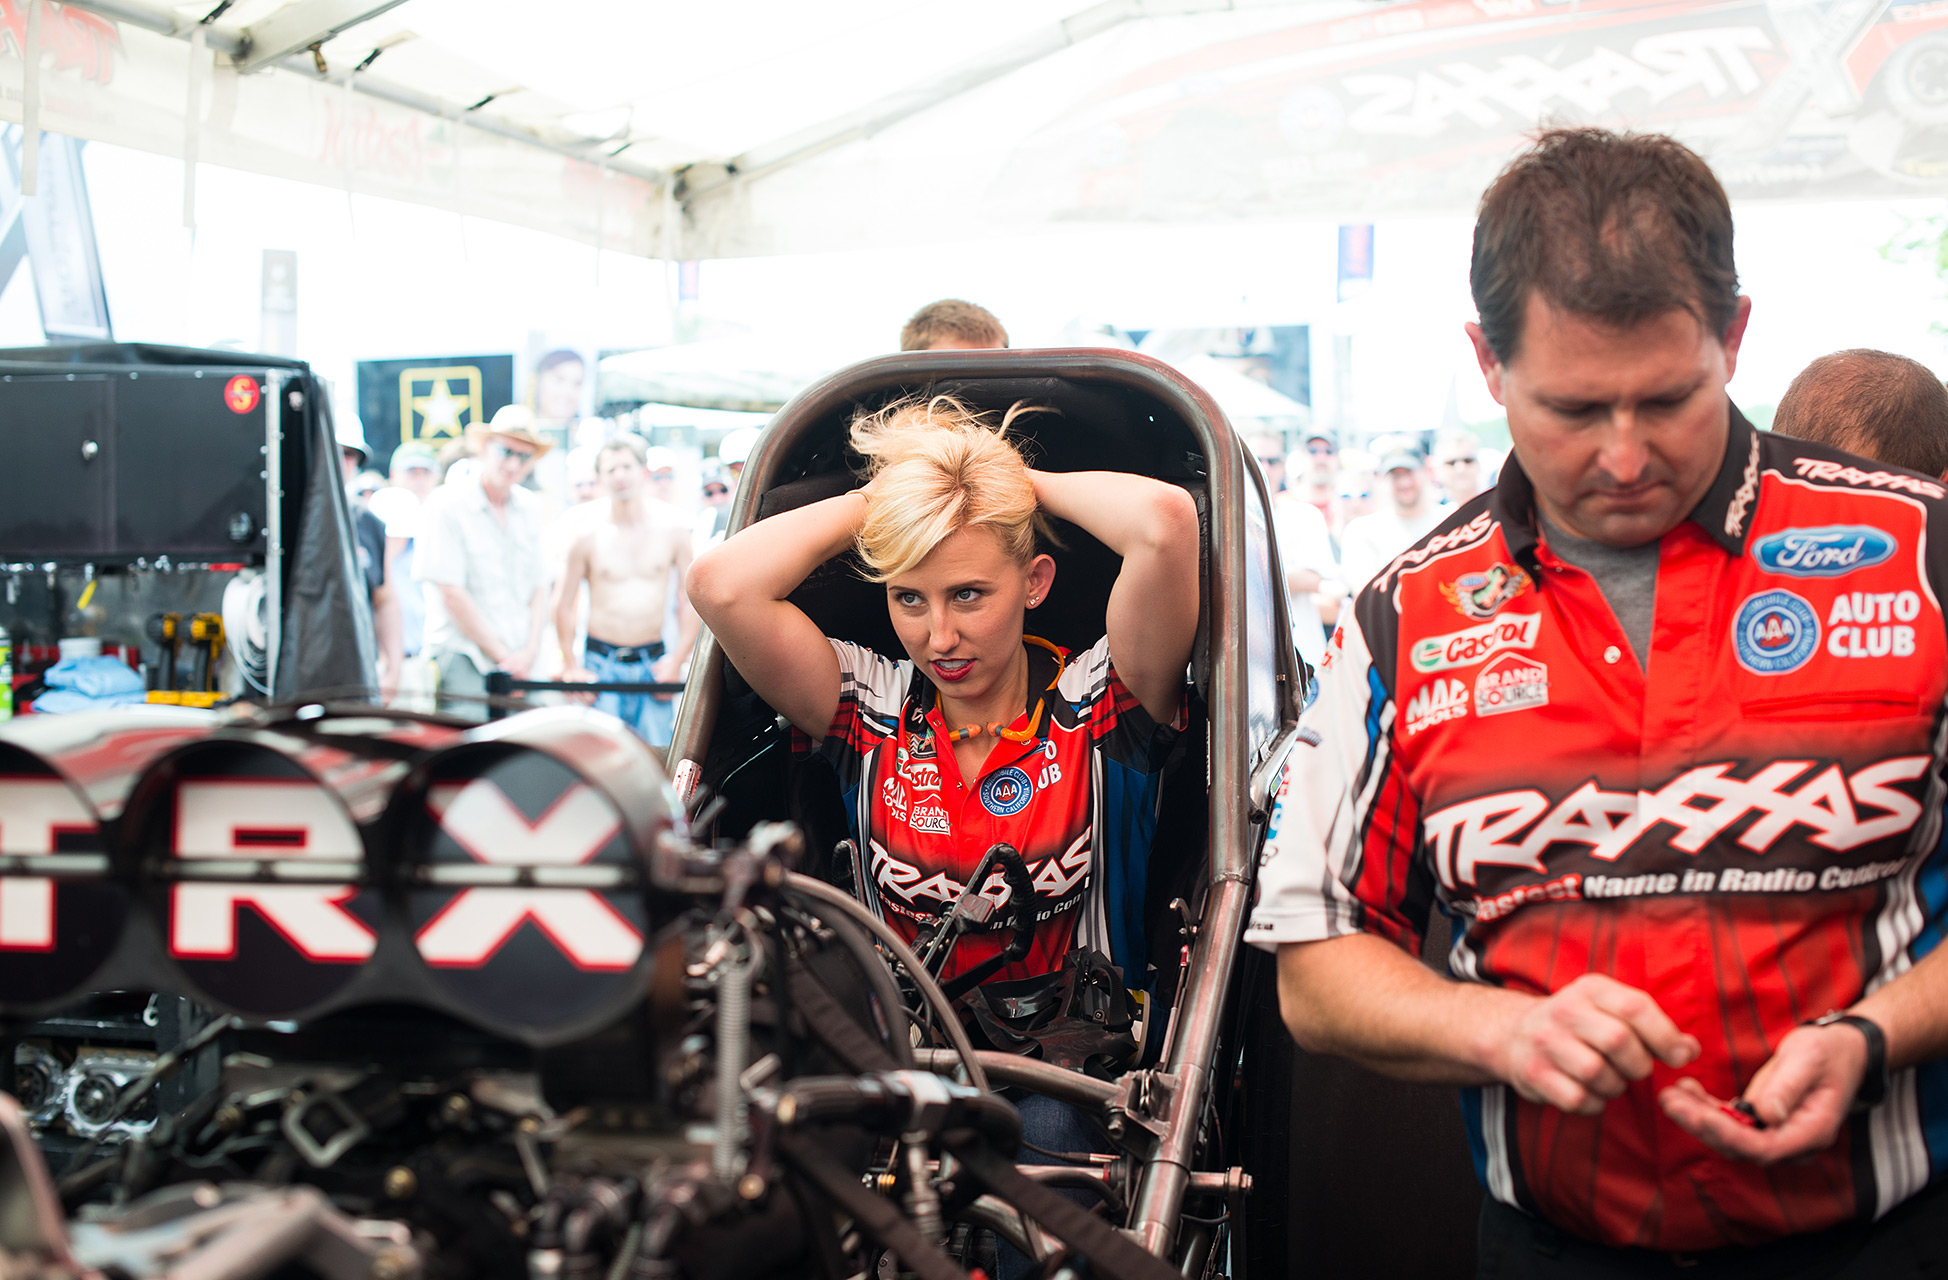 Courtney Force, who runs in the Funny Car class of NHRA, sits seventh in the standings, three spots ahead of her father.